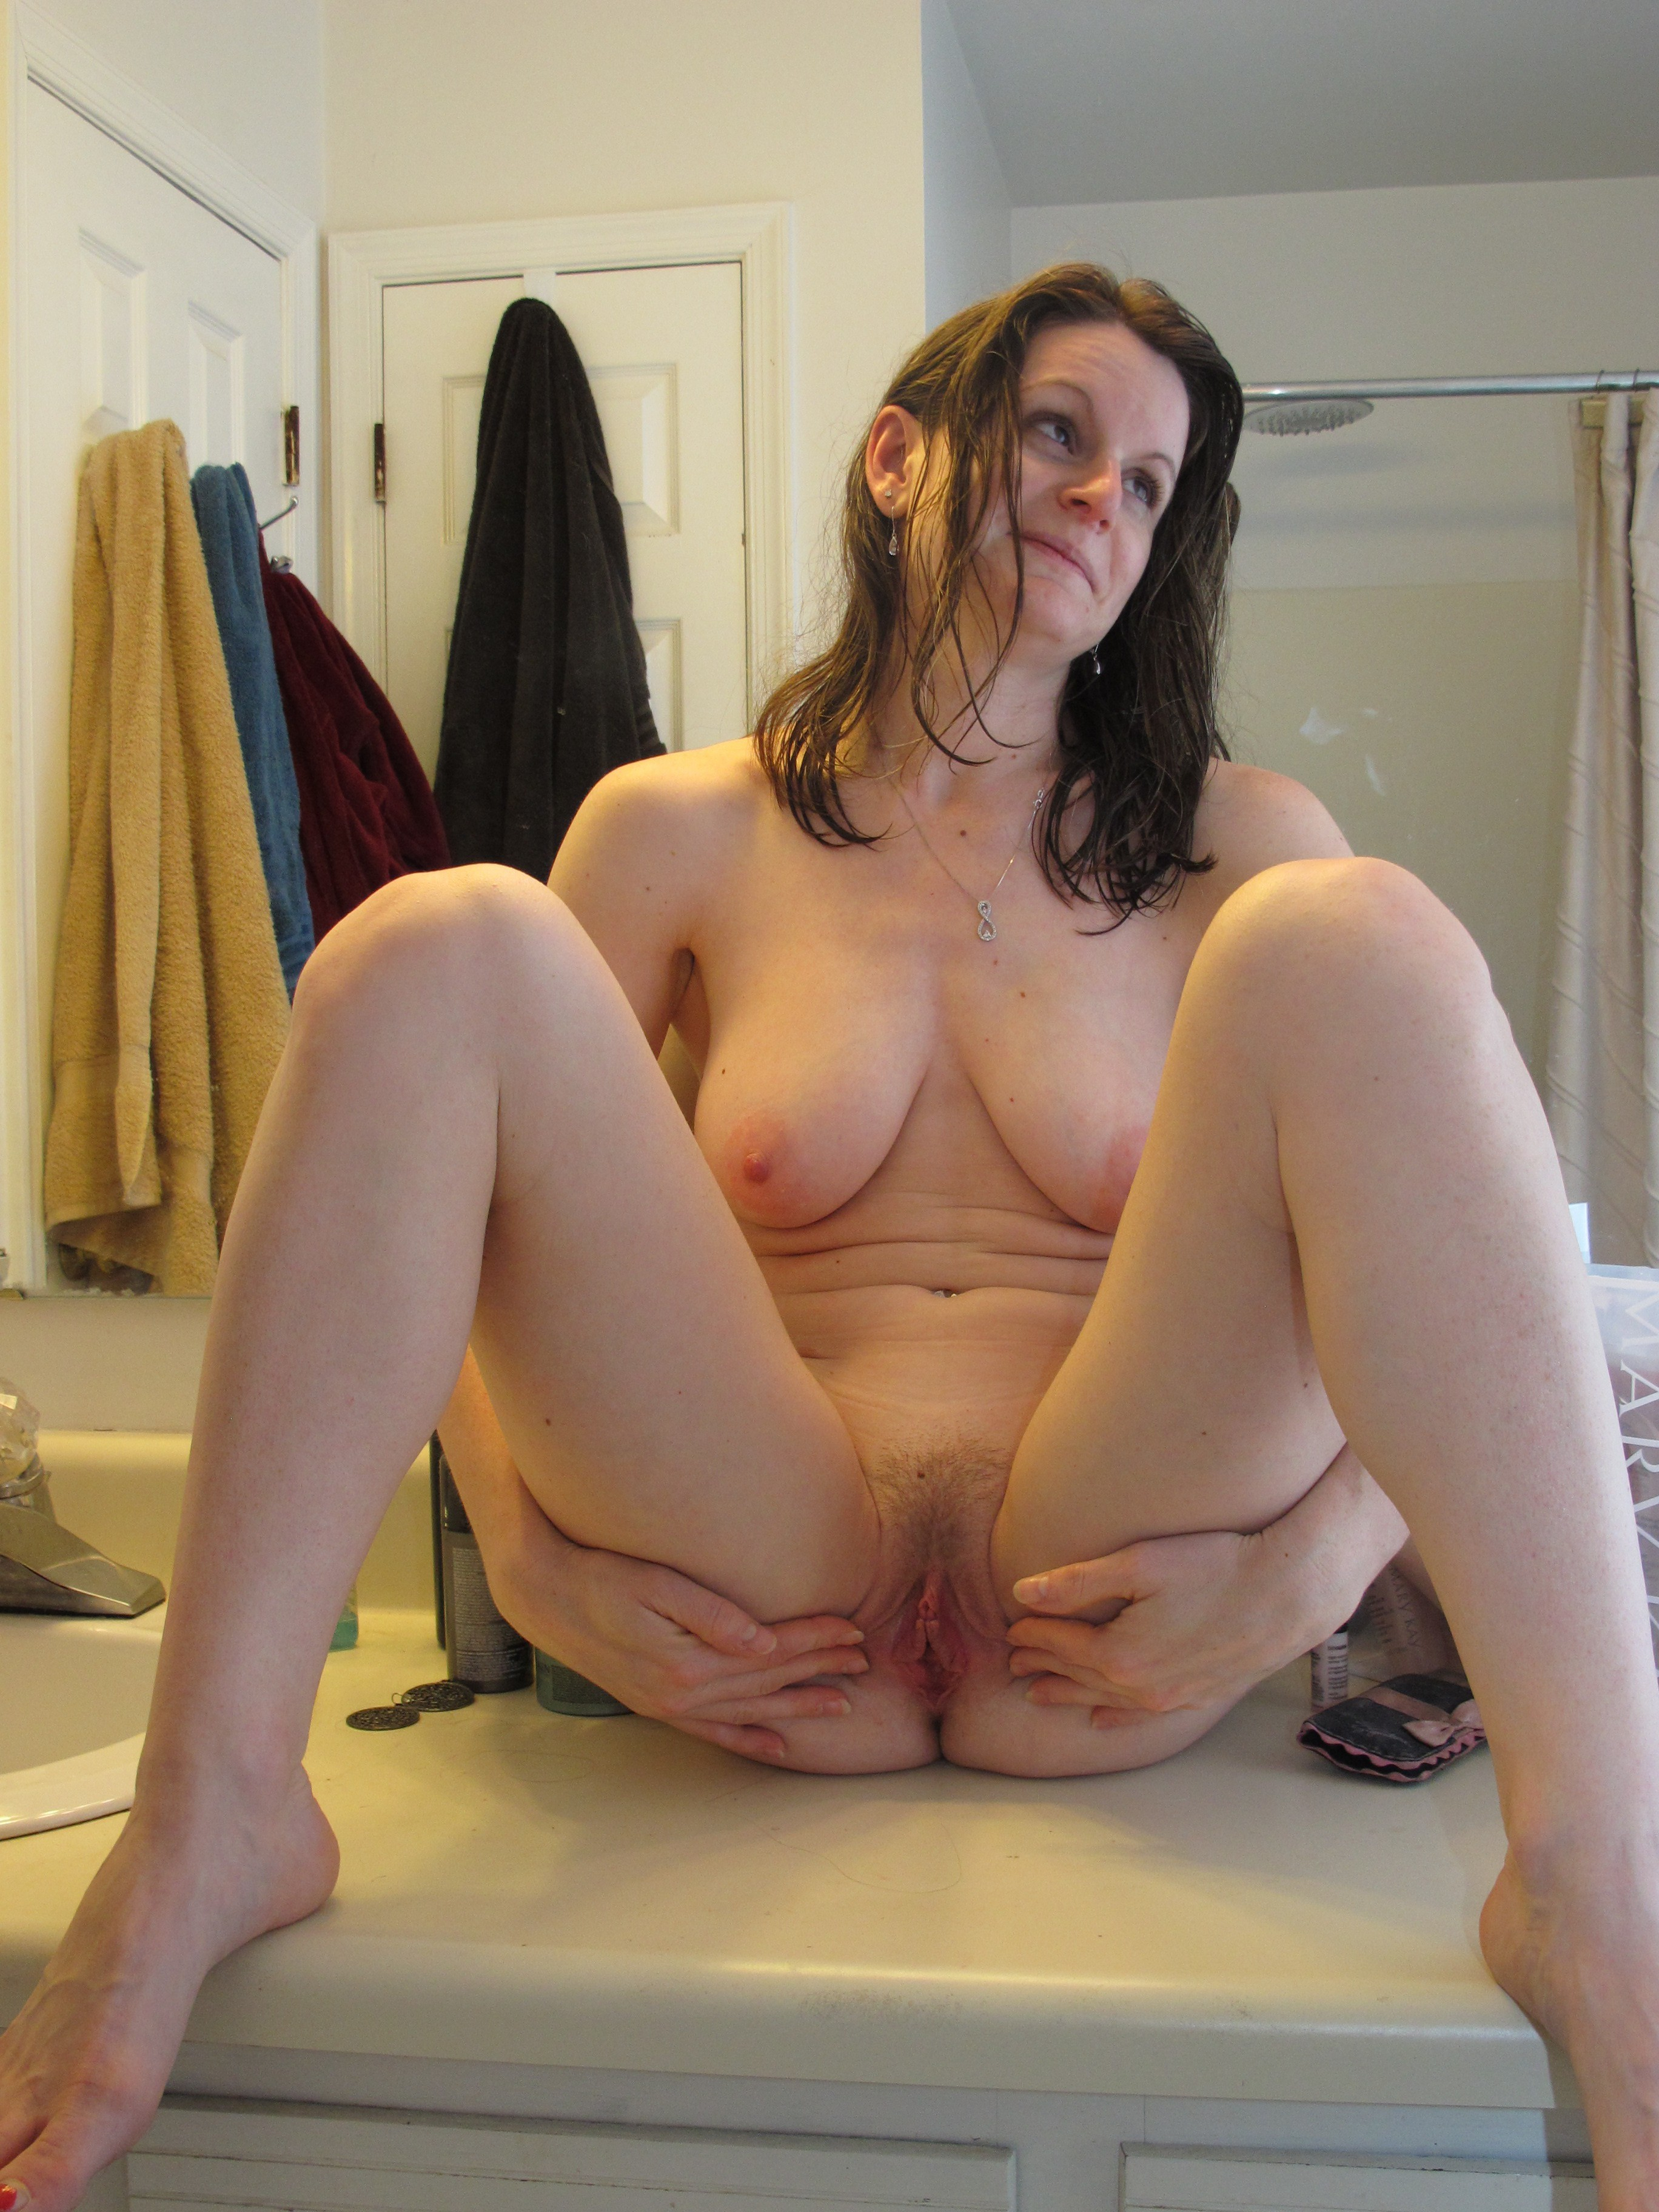 Smutty amateurs nude — img 15